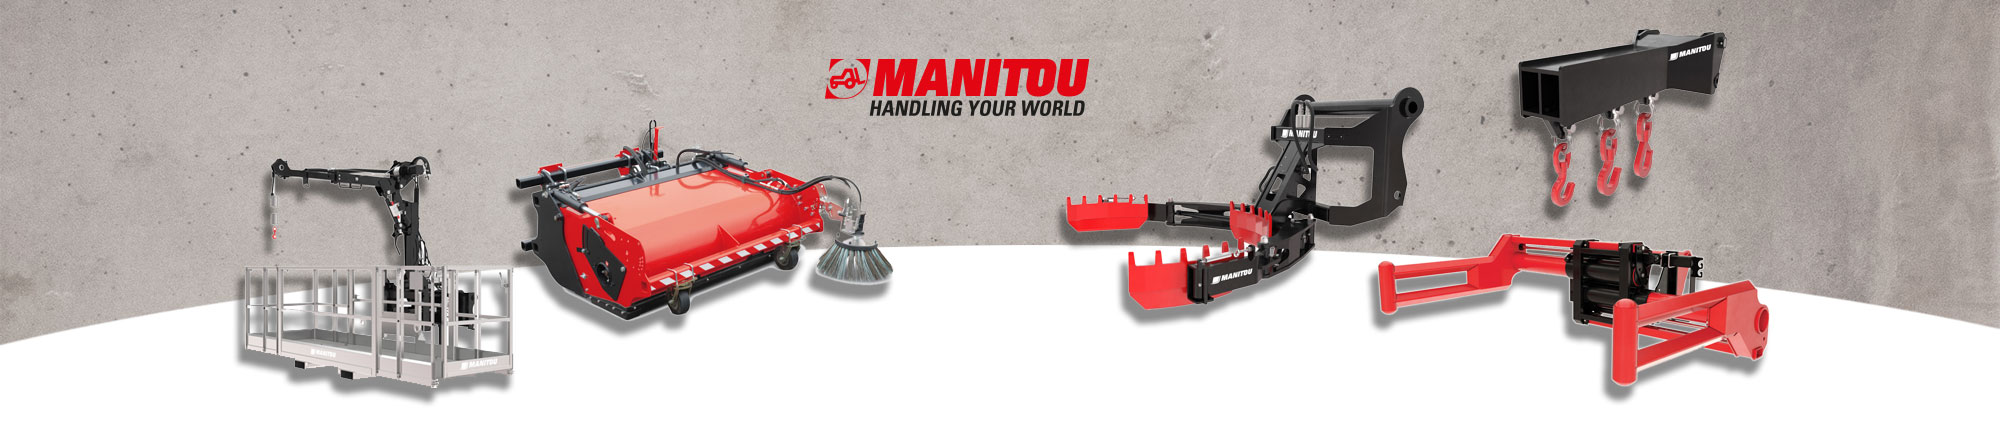 Manitou Attachments